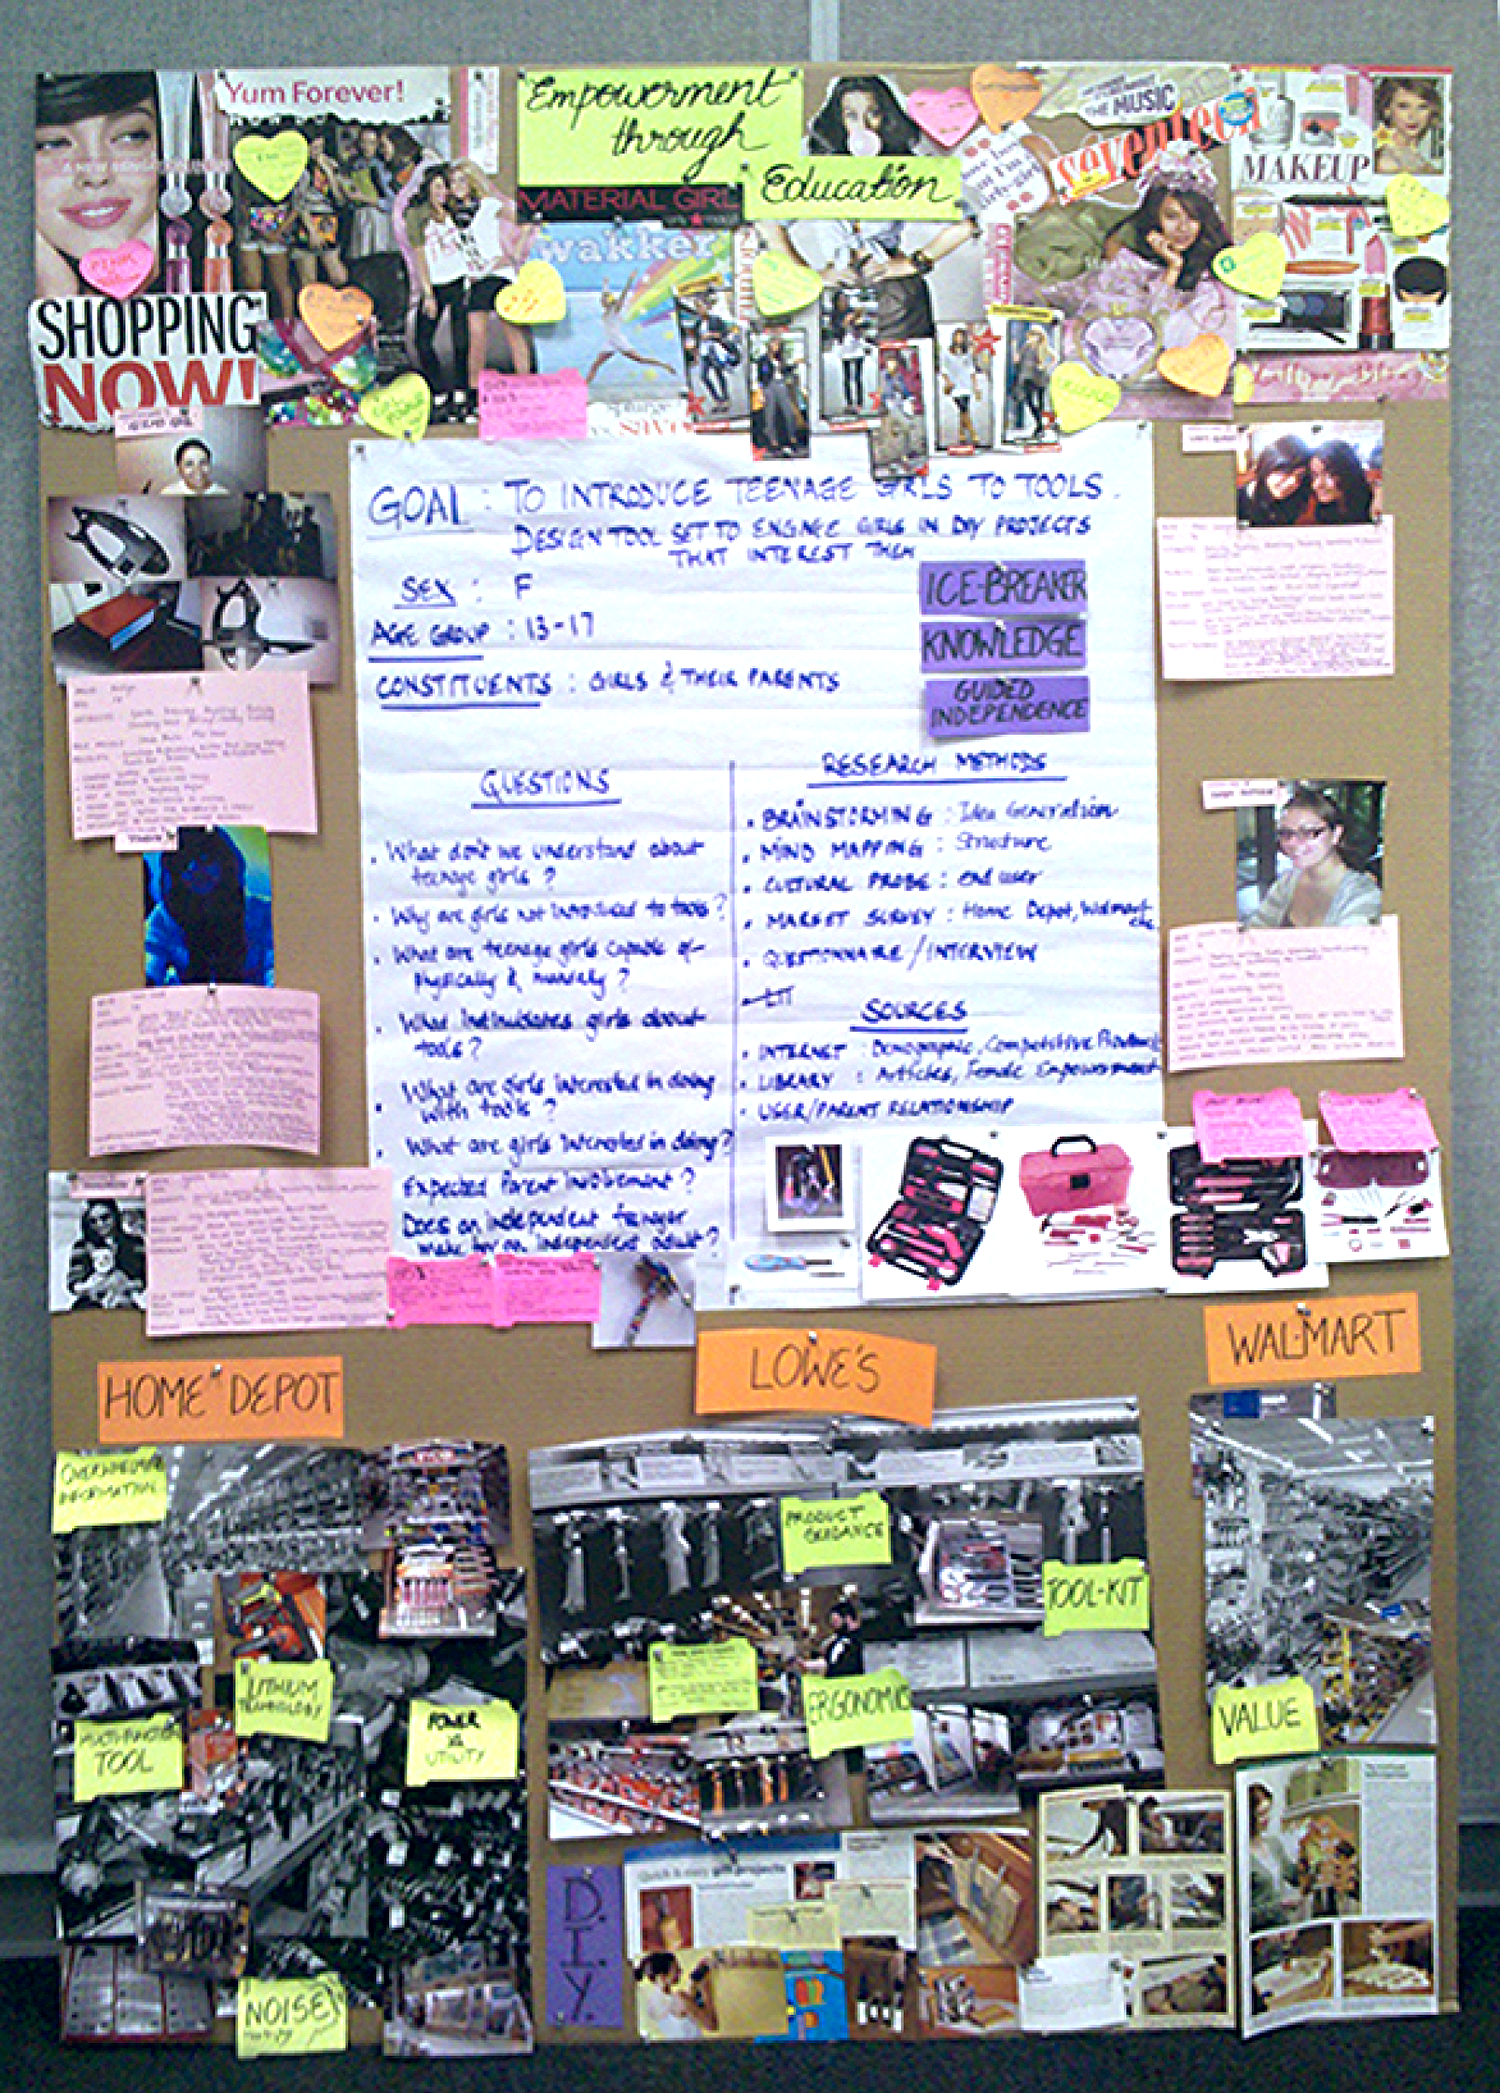 Female empowerment hastraditionally been a goal of thefeminist and women's rights.movements but their focus has been re-educating the adult mind set andbreaking taboos. Our project goals aresimilar but, the real battle here can befought earlier with teenagers.Educating children to be self-reliantpaves the way for independenceas adults. Early education makes itpossible for teenagers to develop lifeskills that carry on into adulthood. Ourgoal is to build empowerment througheducation.